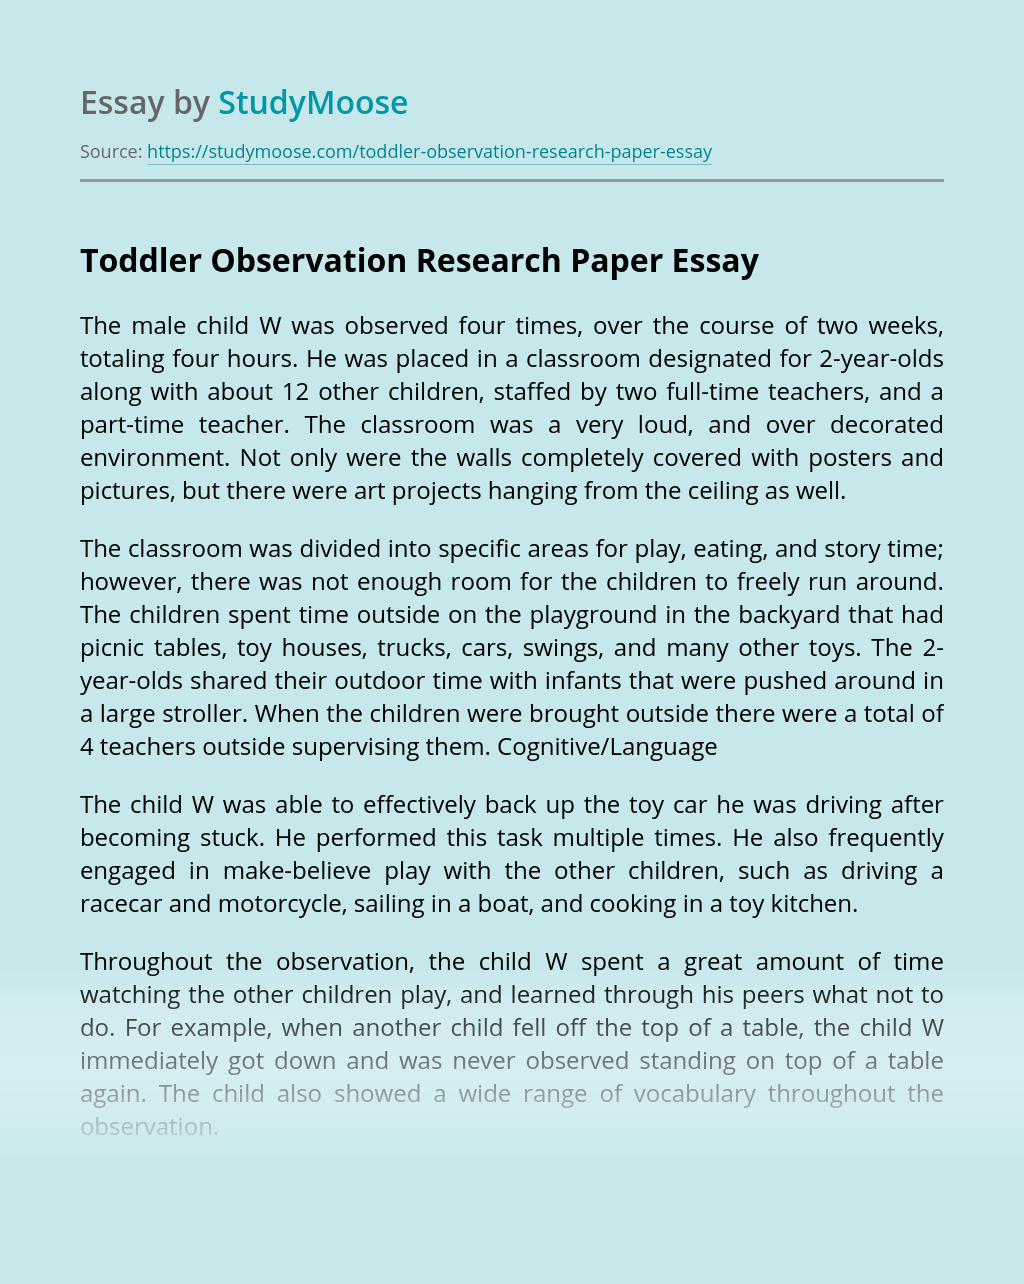 Toddler Observation Research Paper